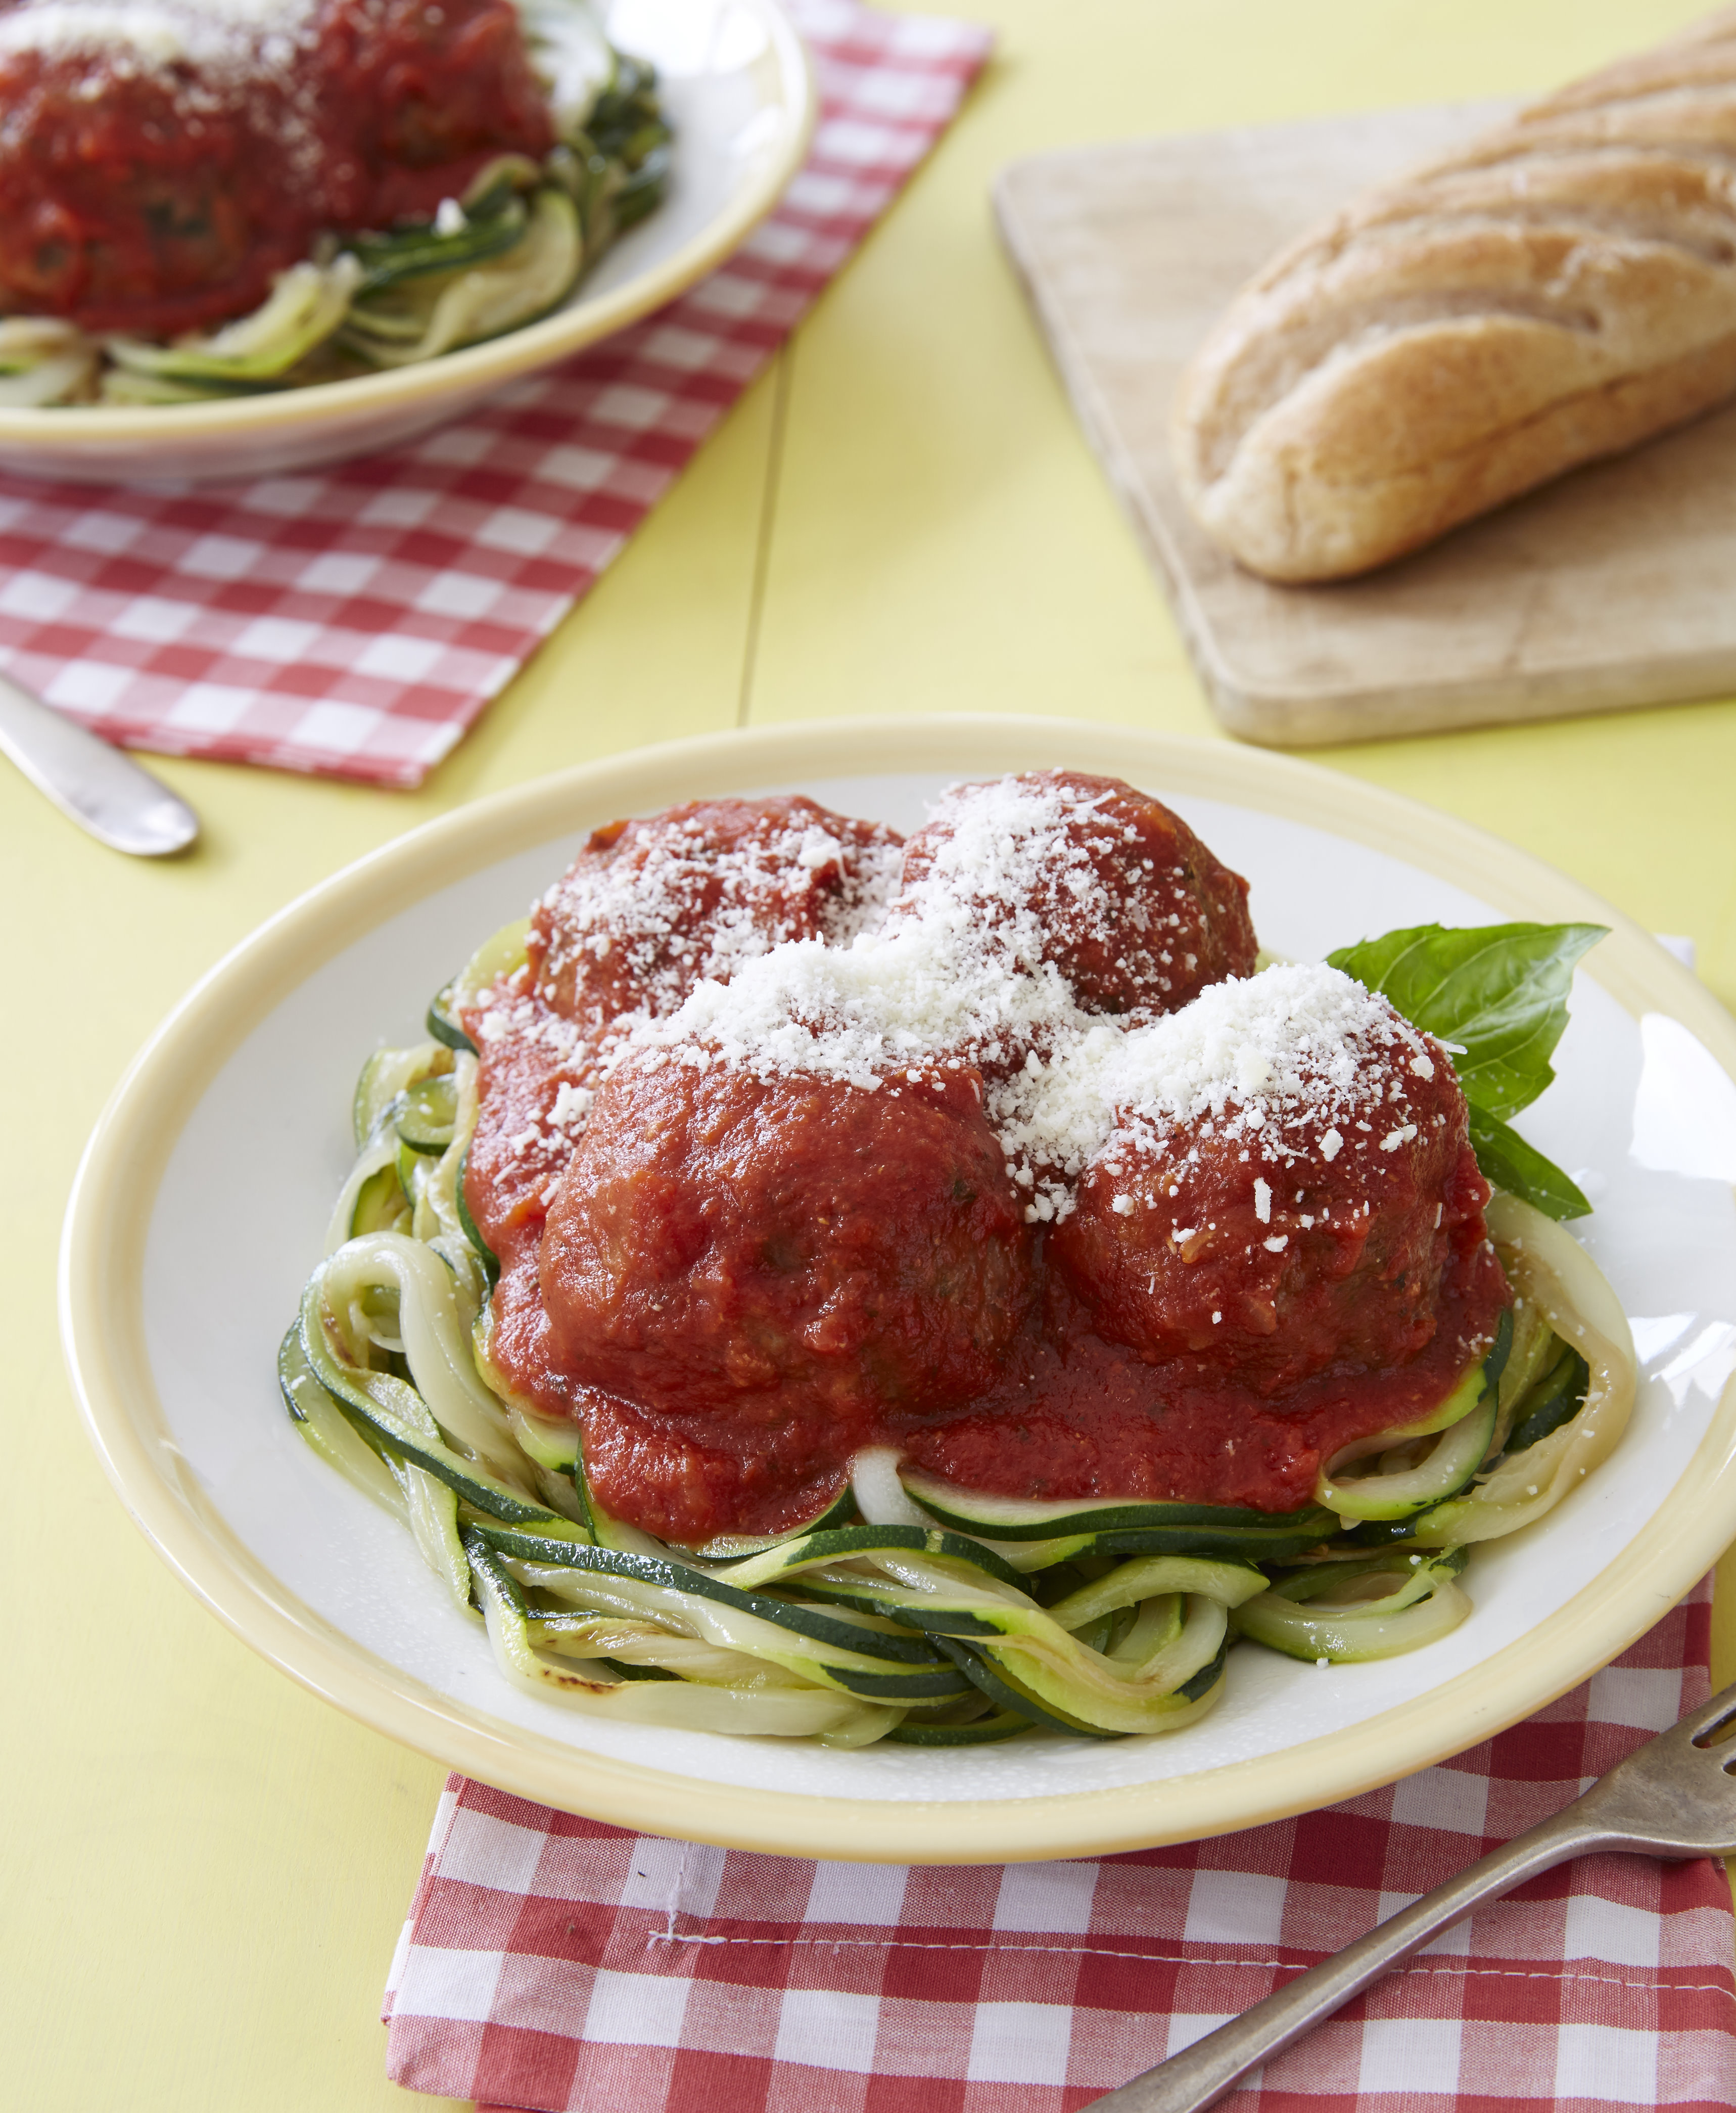 Zucchini Linguine with Meatballs - Joy Bauer